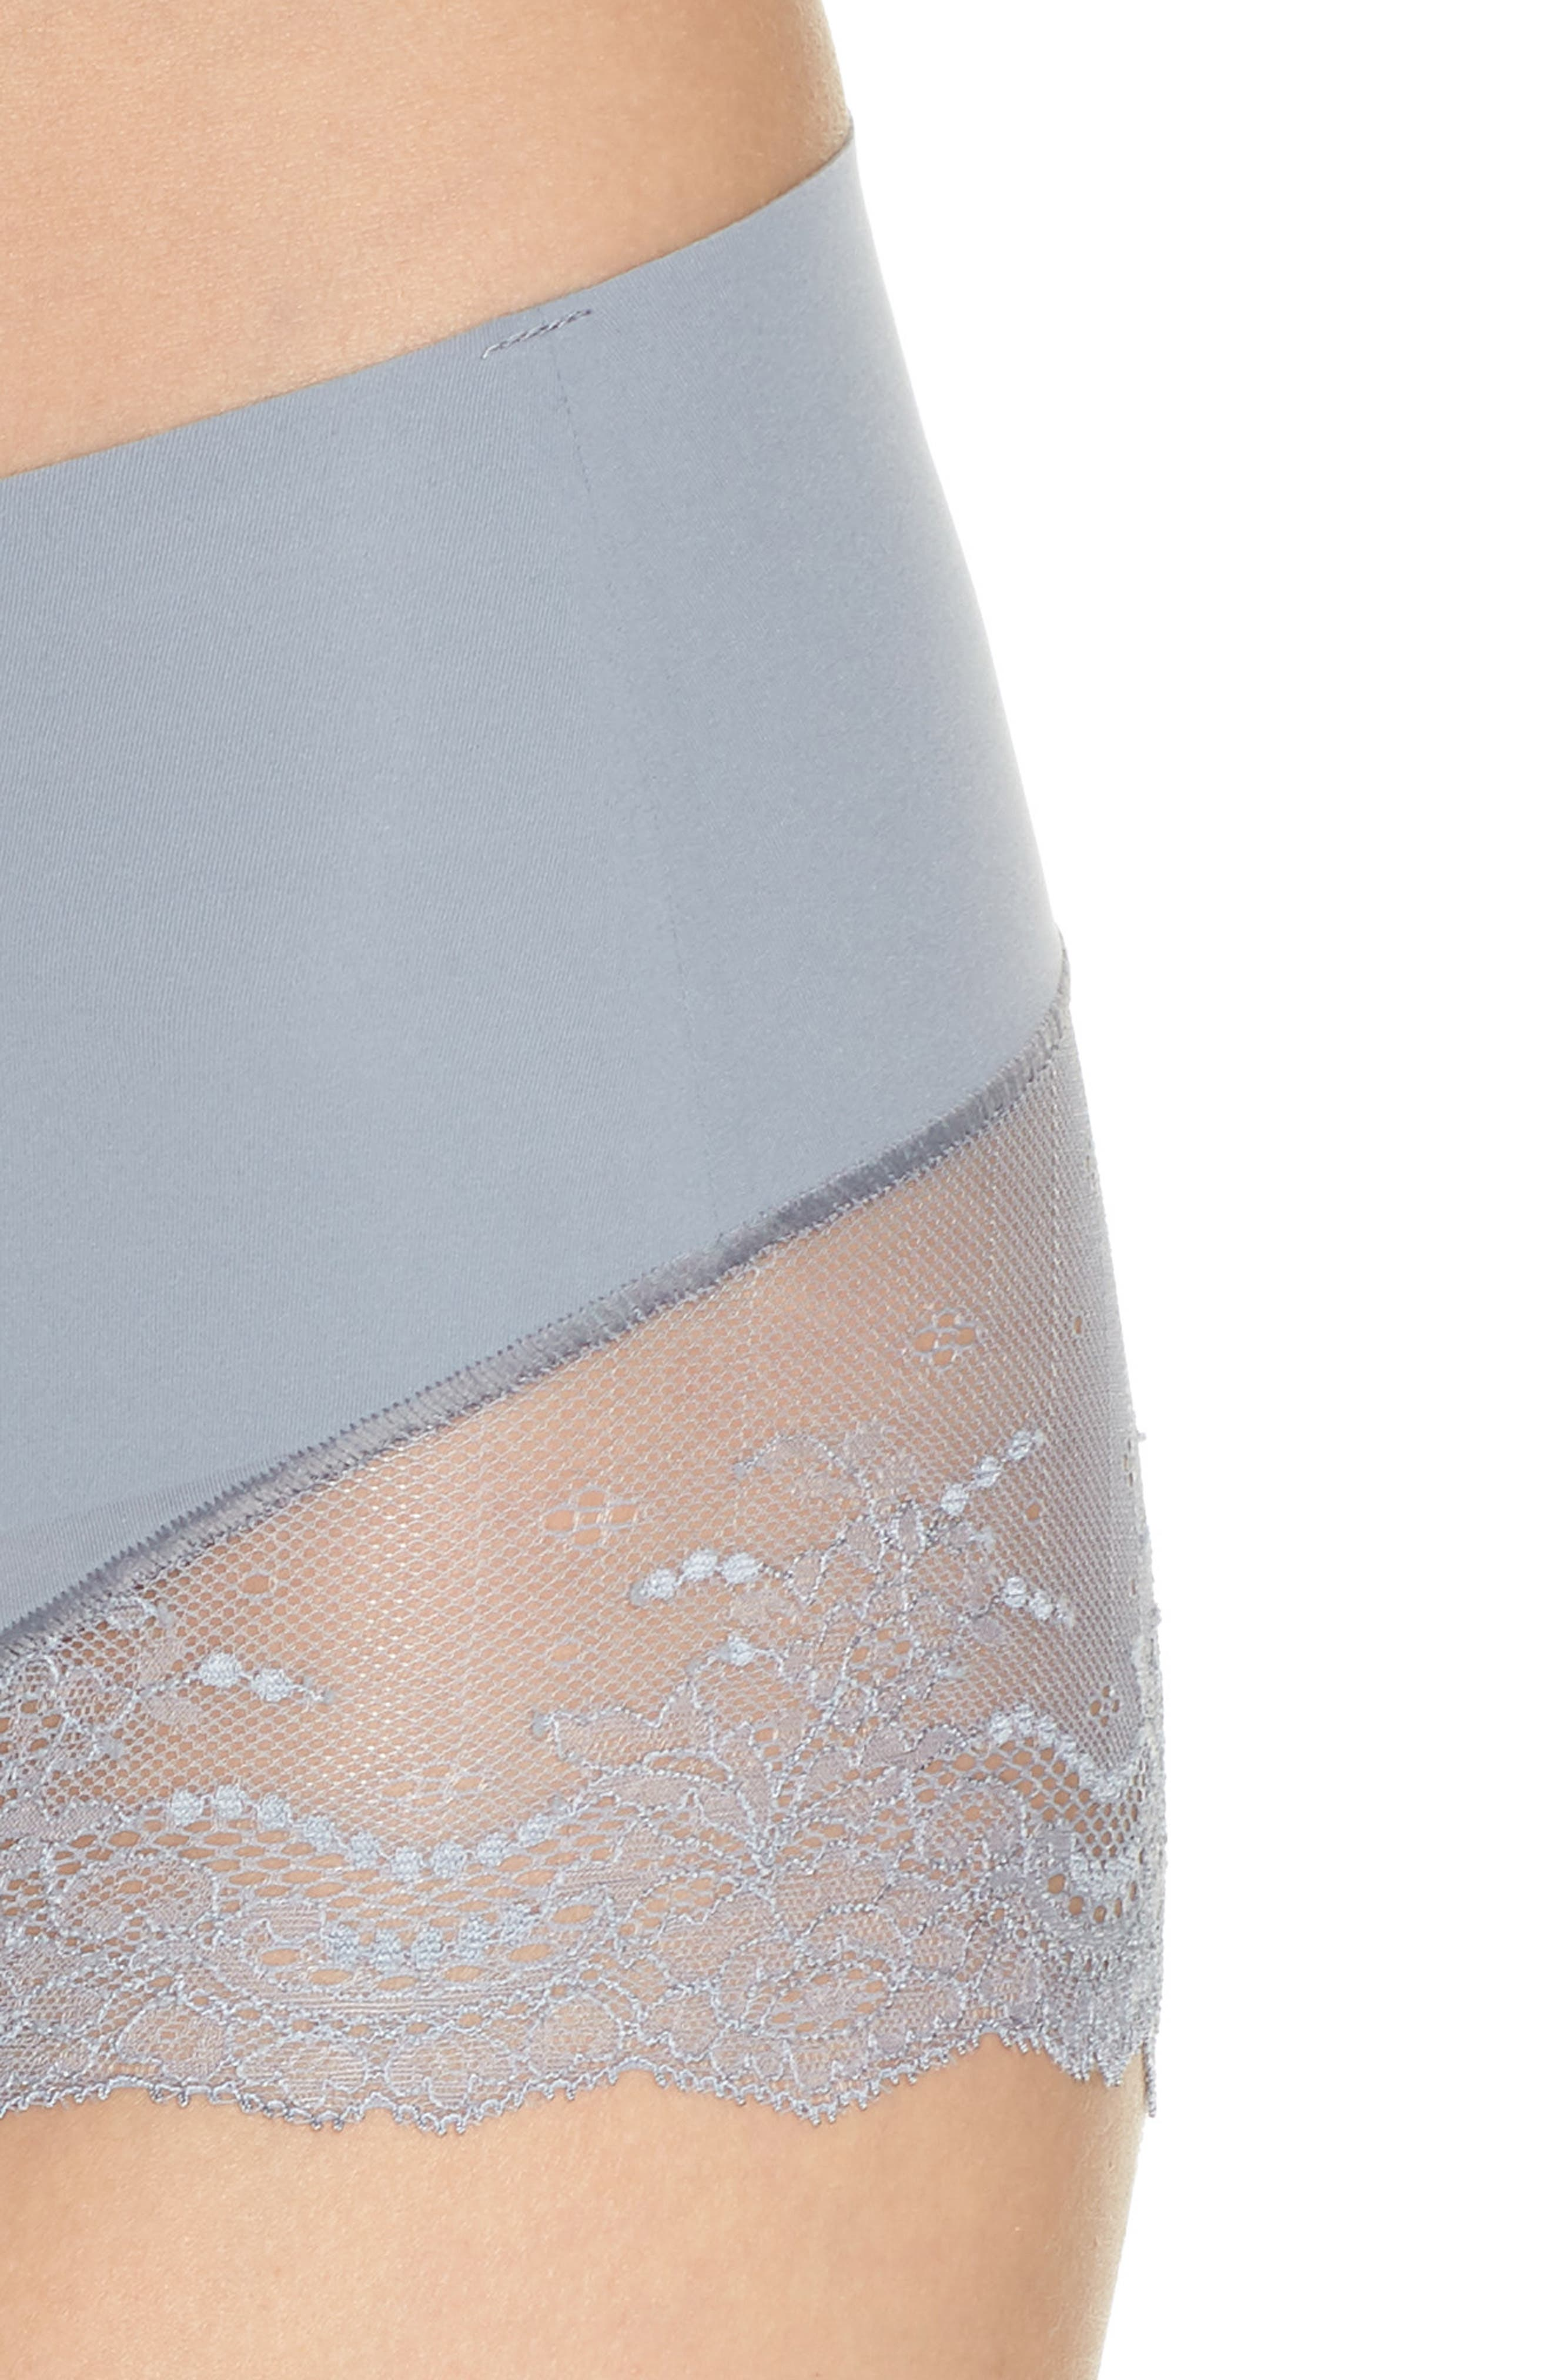 Undie-tectable Lace Hipster Panties,                             Alternate thumbnail 4, color,                             FOG GREY